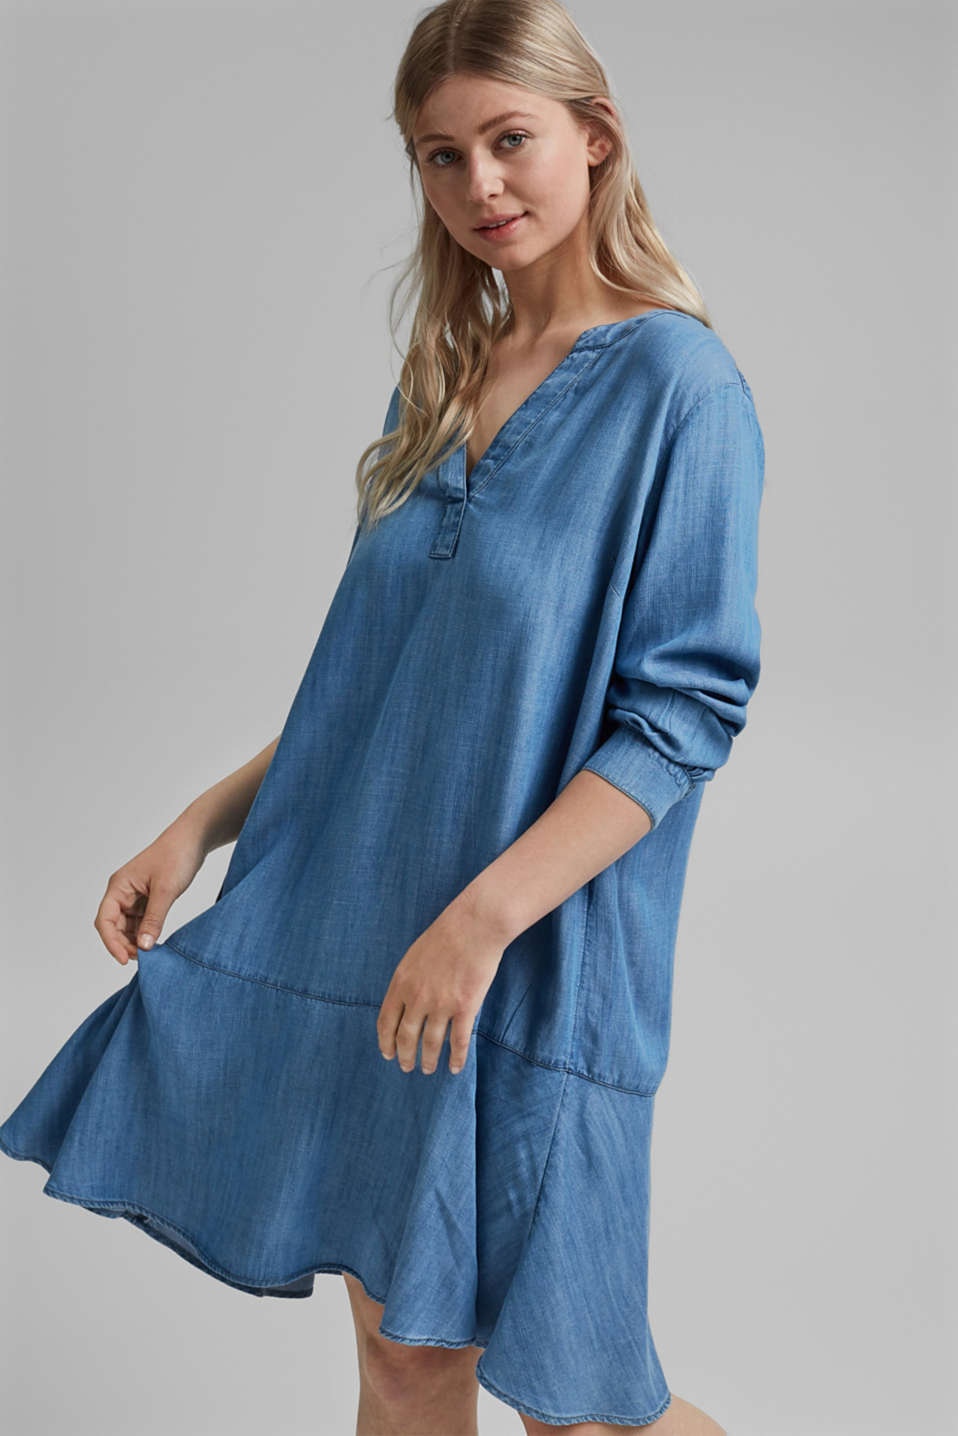 Esprit - CURVY TENCEL™: denim jurk met volants